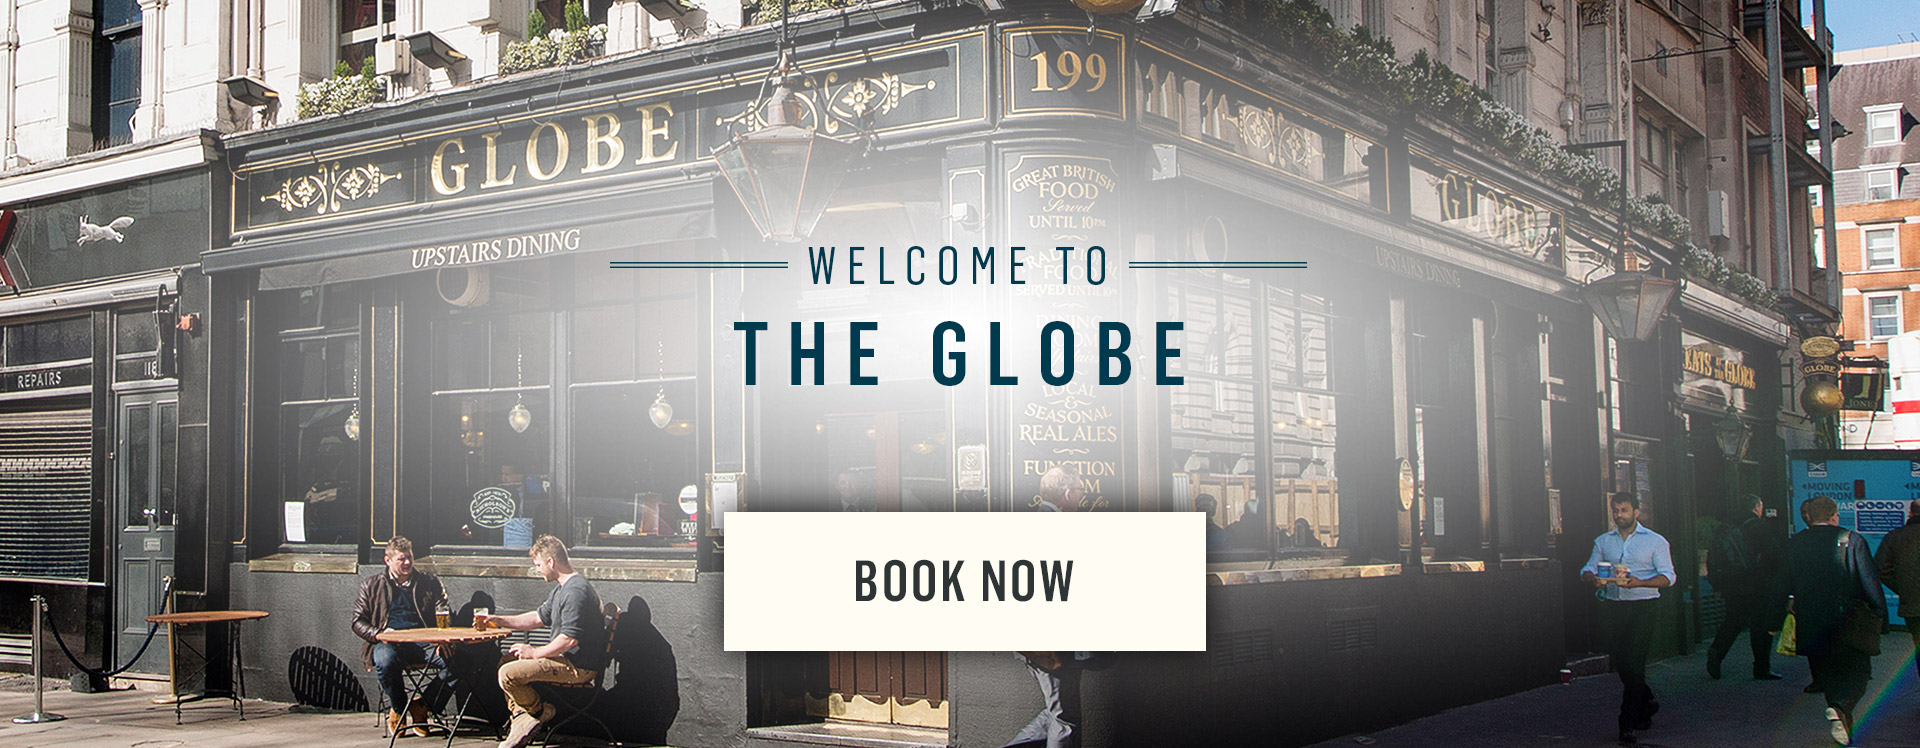 Welcome to The Globe - Book Now